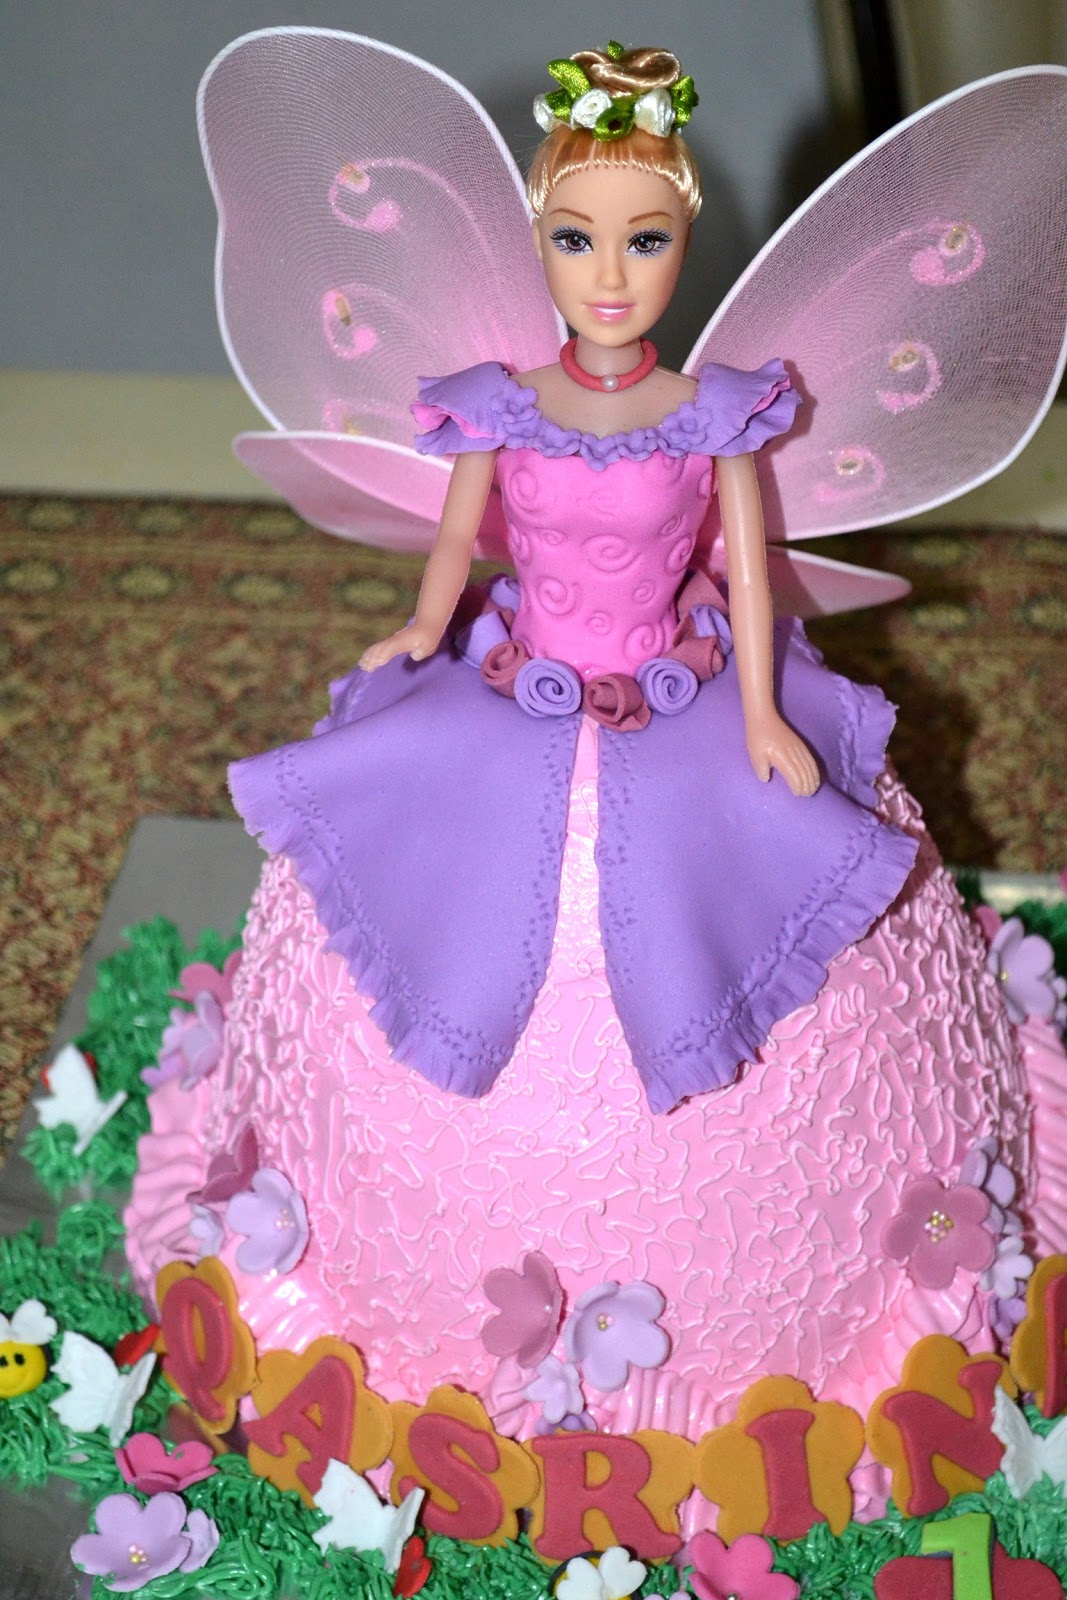 Mypu3 Cake House Princess Doll Cake